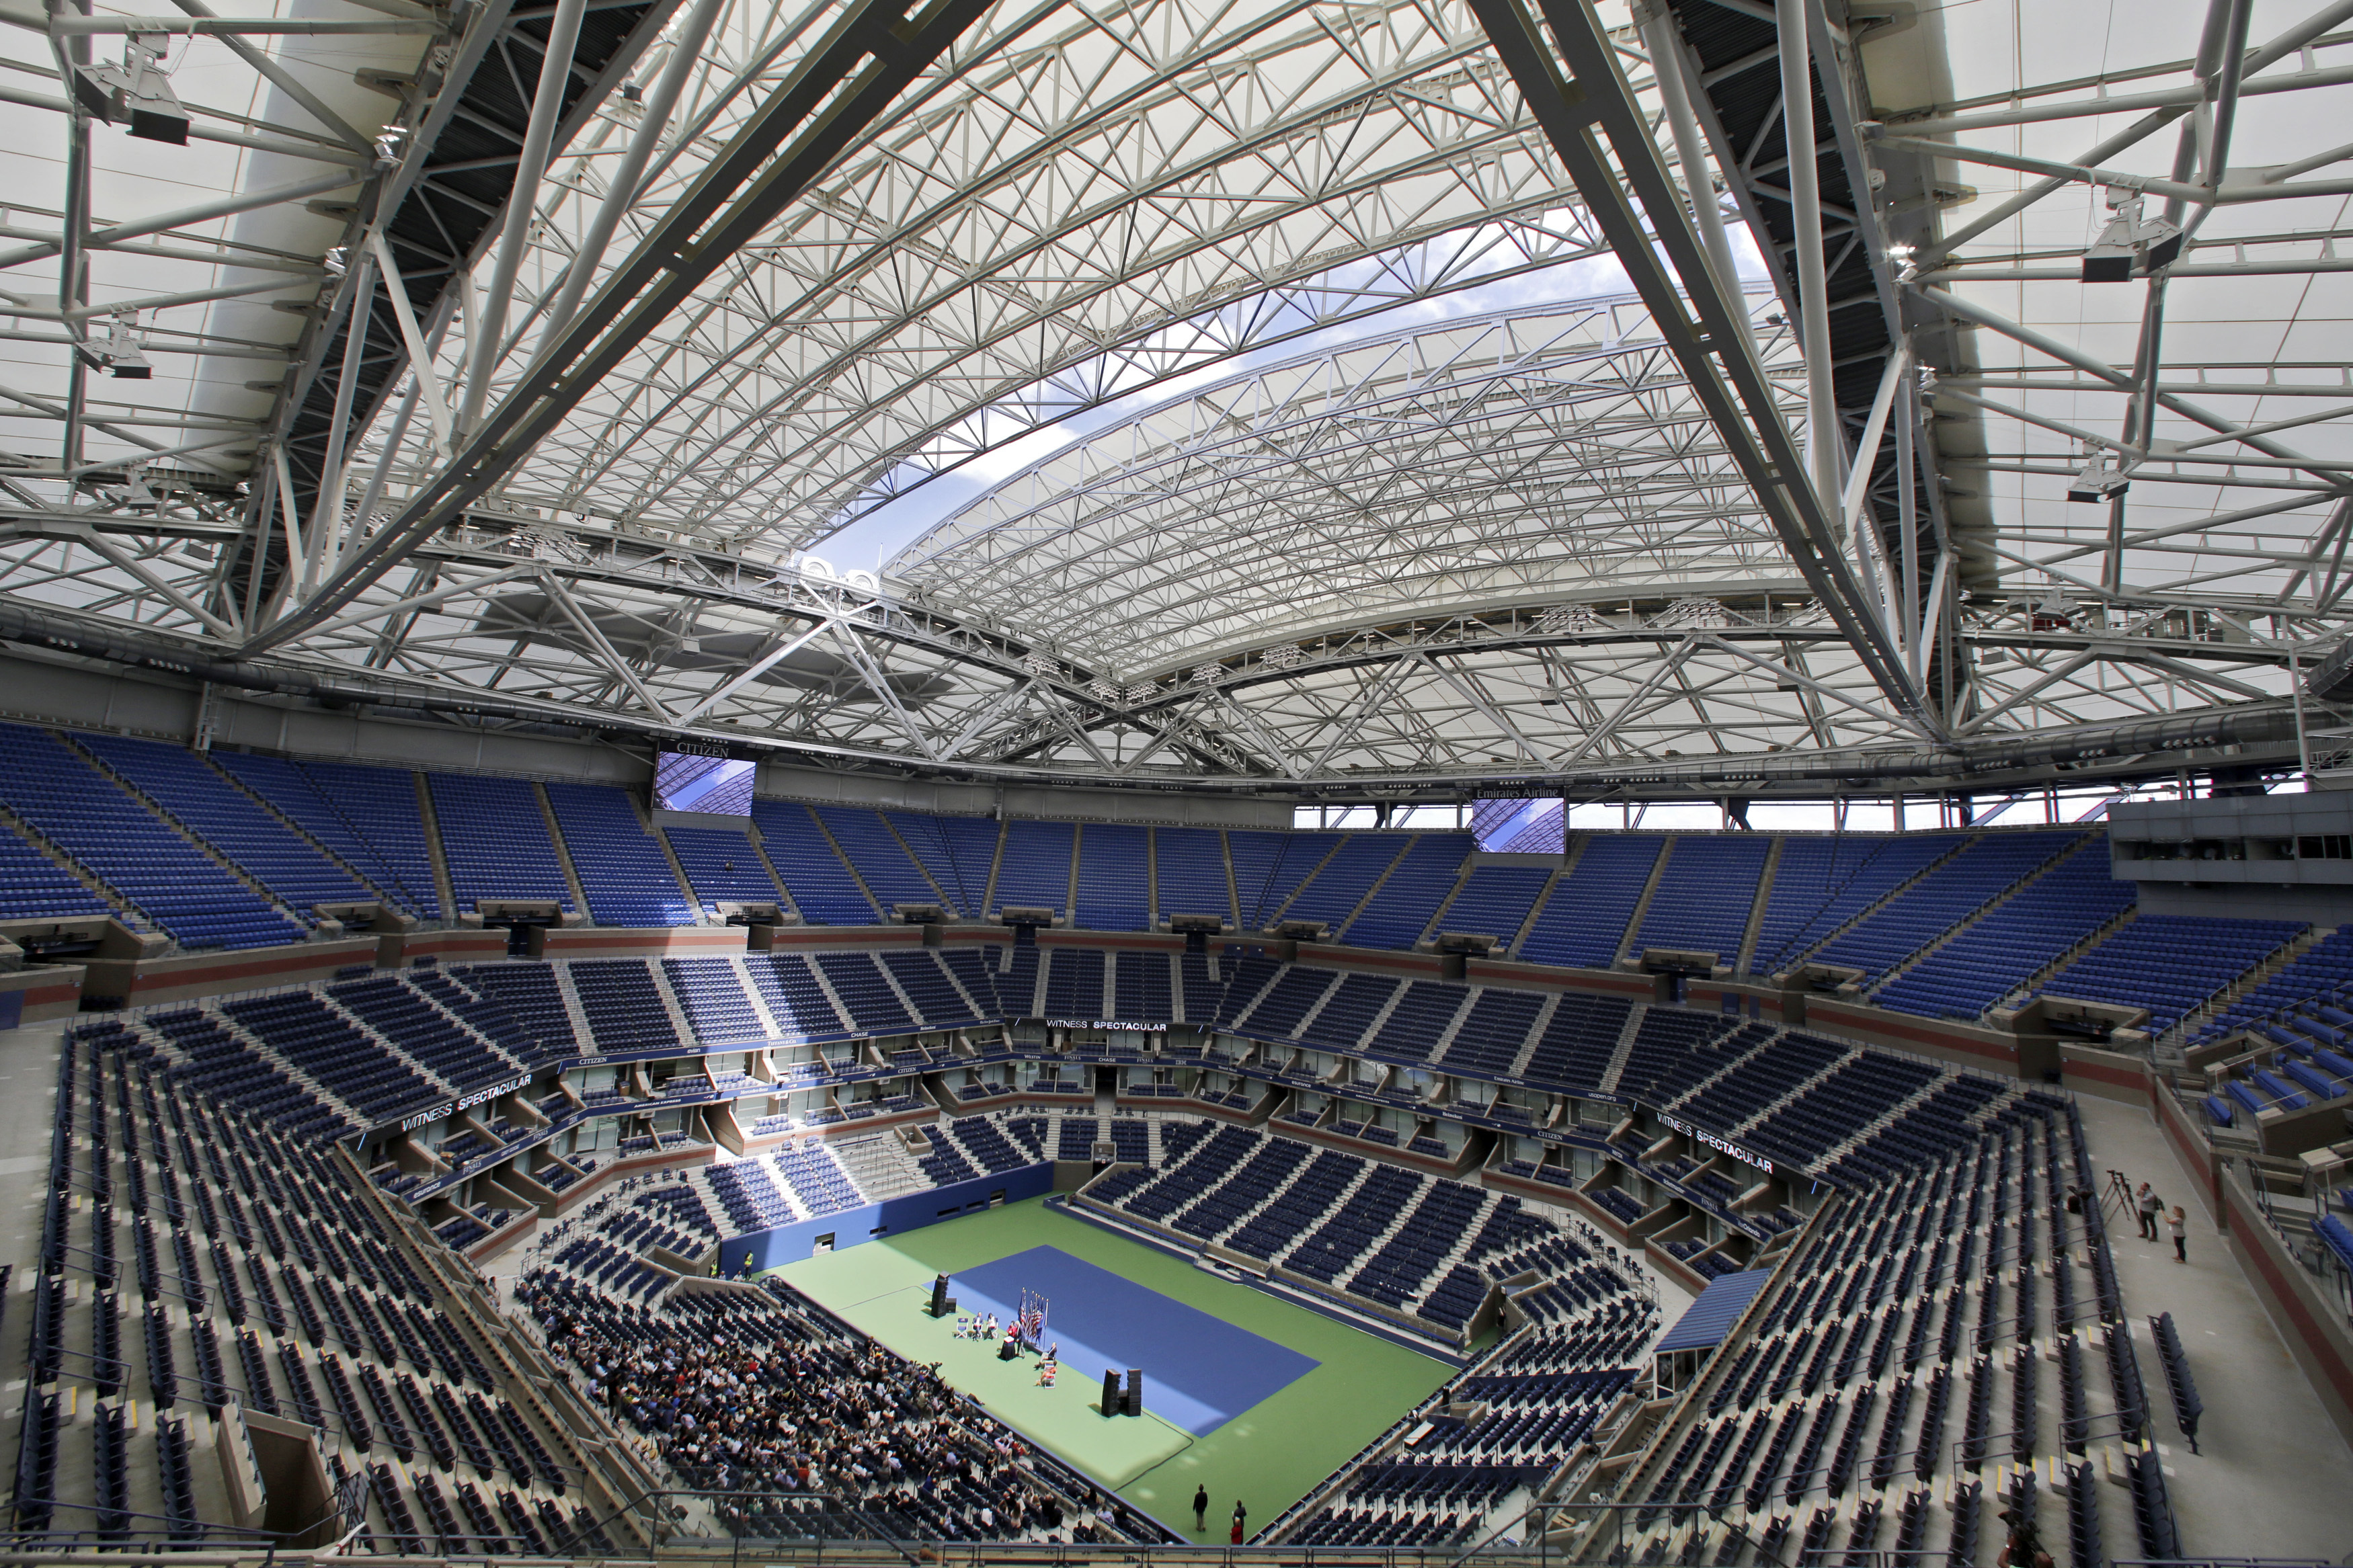 FILE - In this Aug. 2, 2016, file photo, the partially open new retractable roof allows a ribbon of light into Arthur Ashe Stadium at the Billie Jean King National Tennis Center in New York. With the stadium now covered by a retractable roof, players such